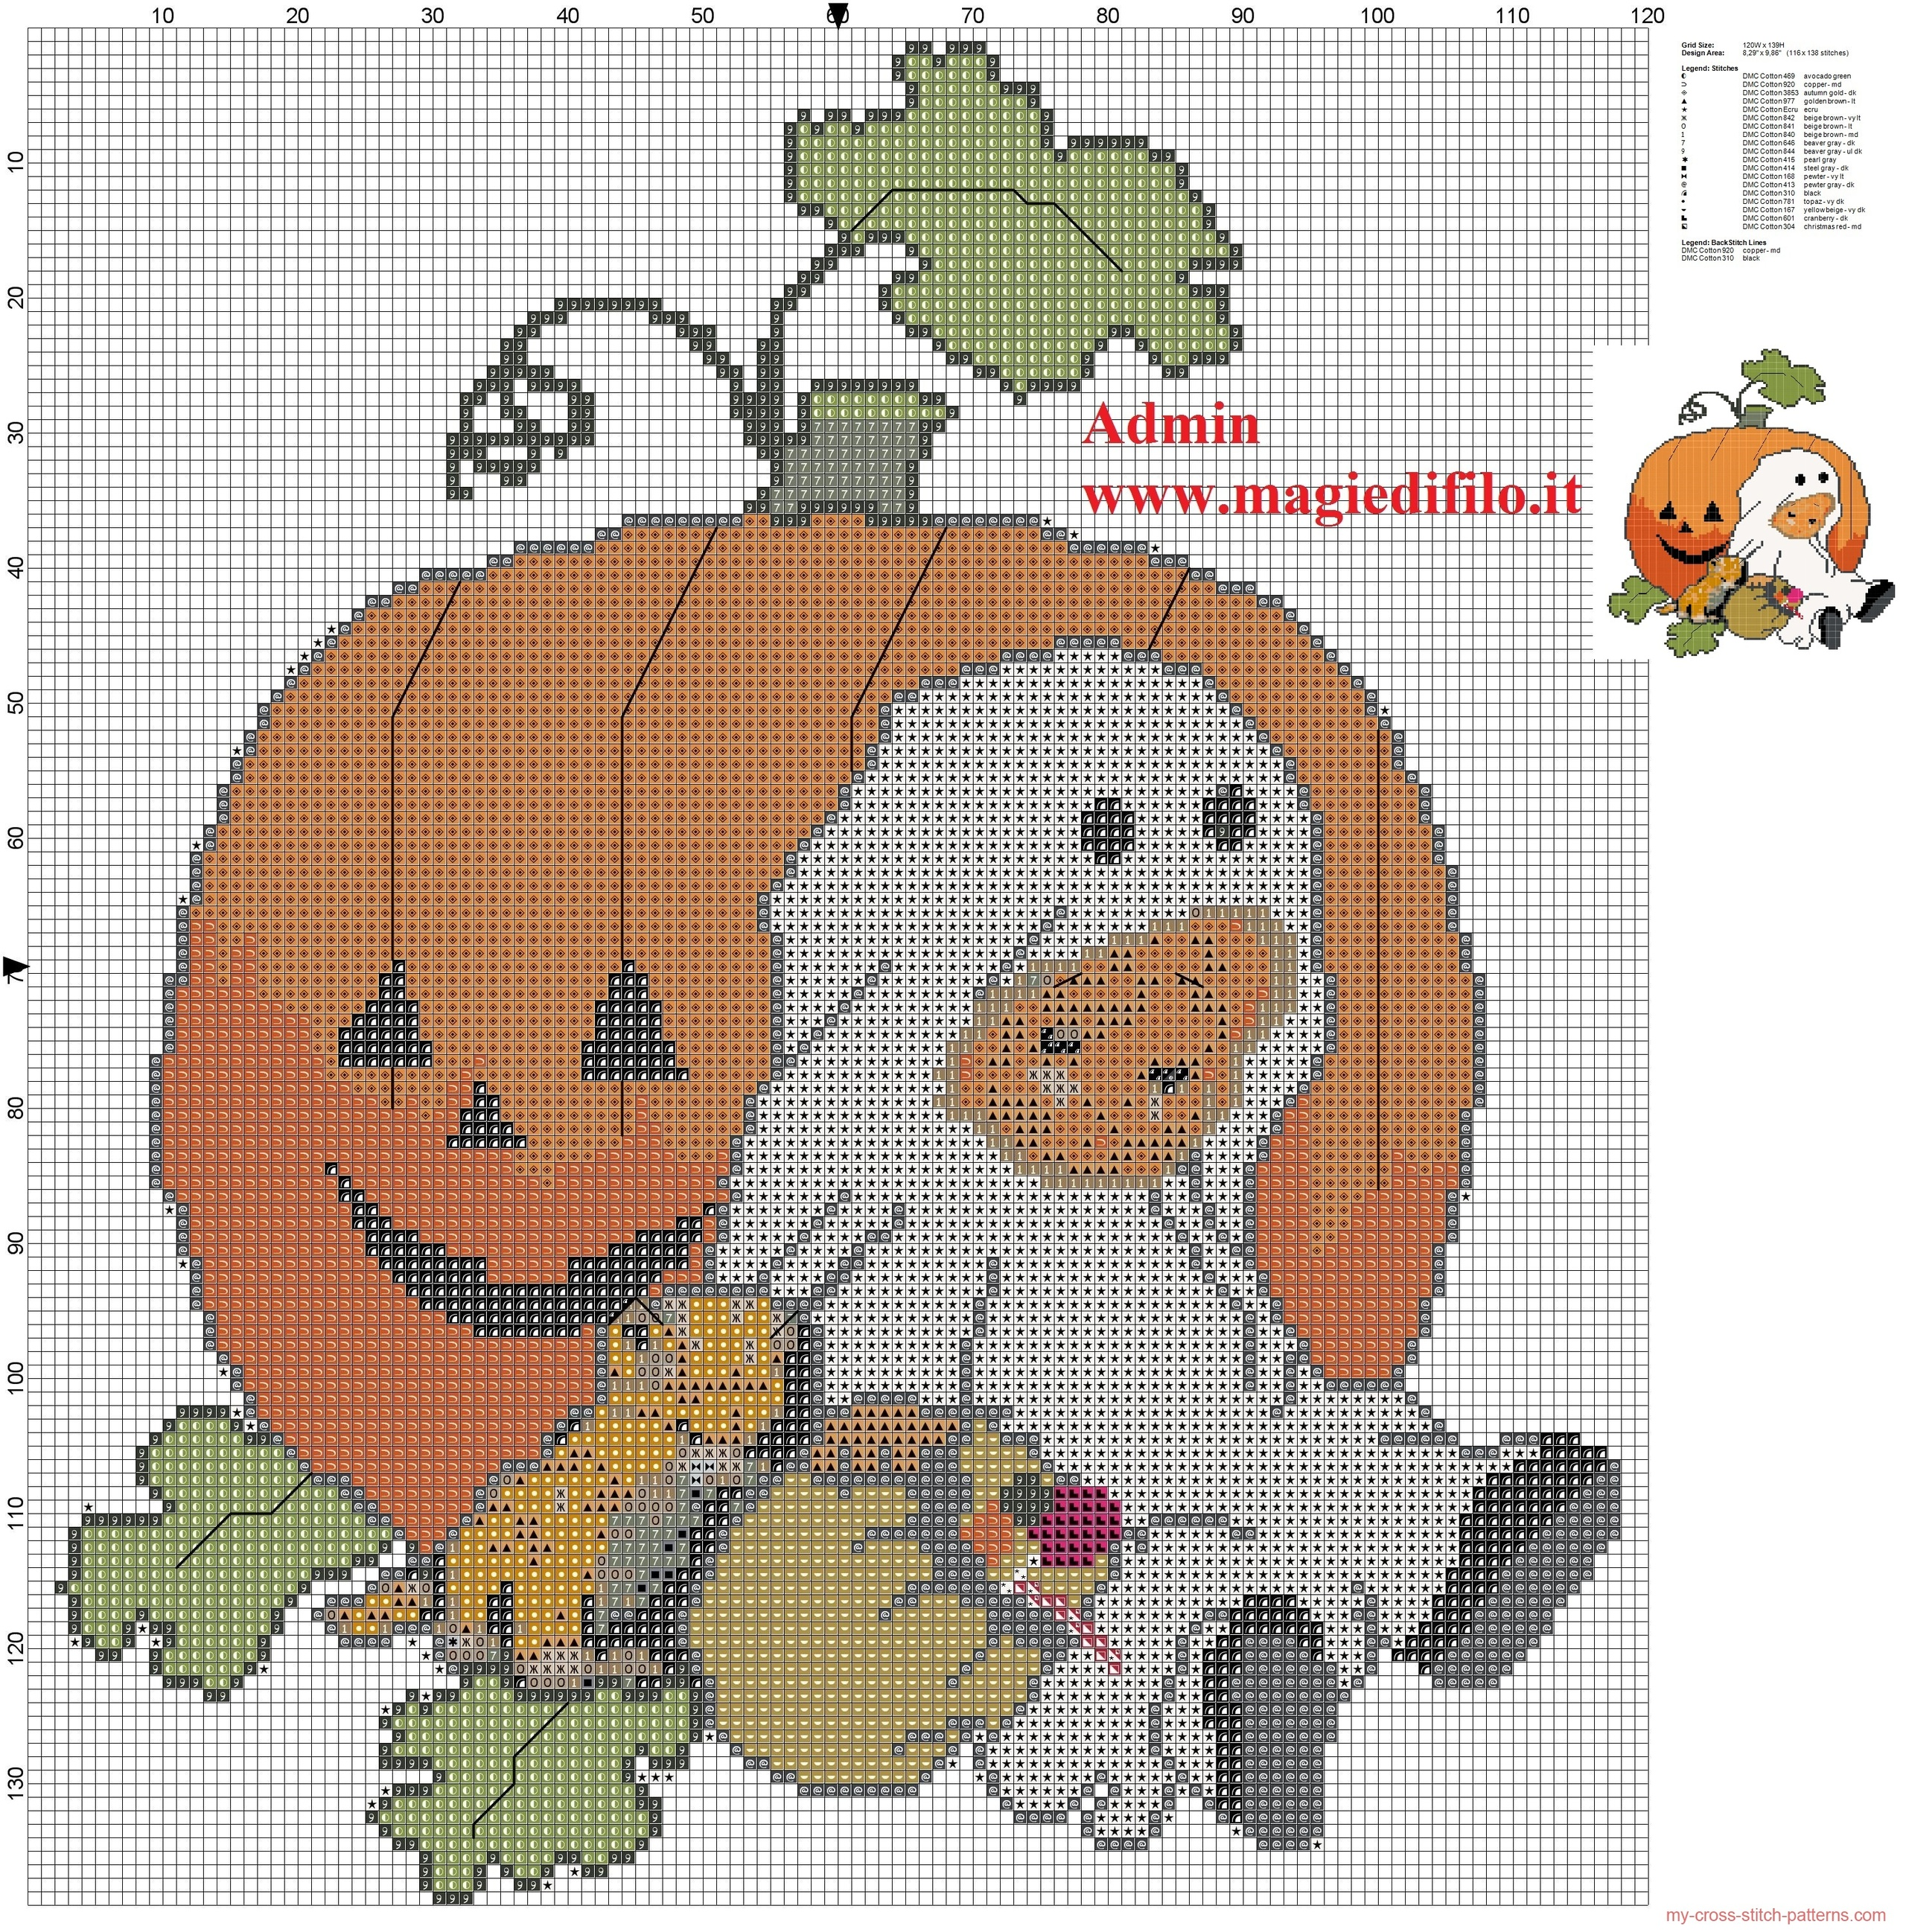 baby_sleeps_with_sweets_and_a_cat_halloween_pattern